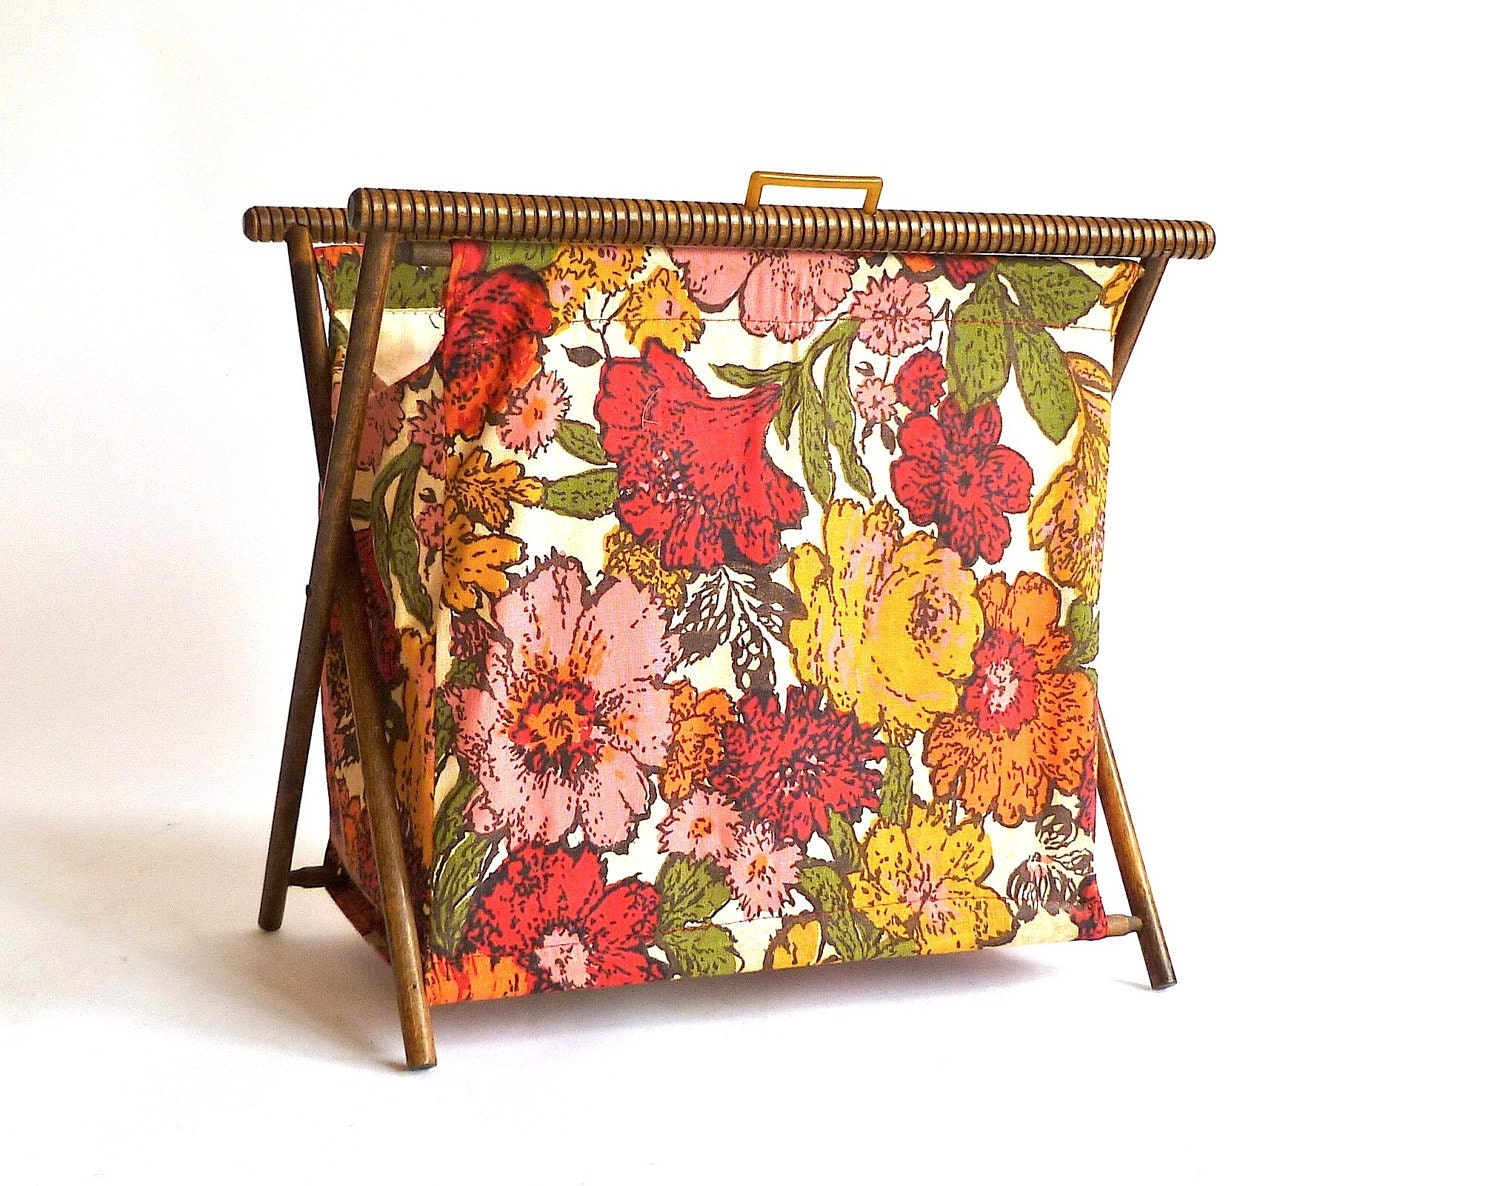 Knitting Bag : Vintage Knitting Bag ... Standing Folding Floral by cushionchicago